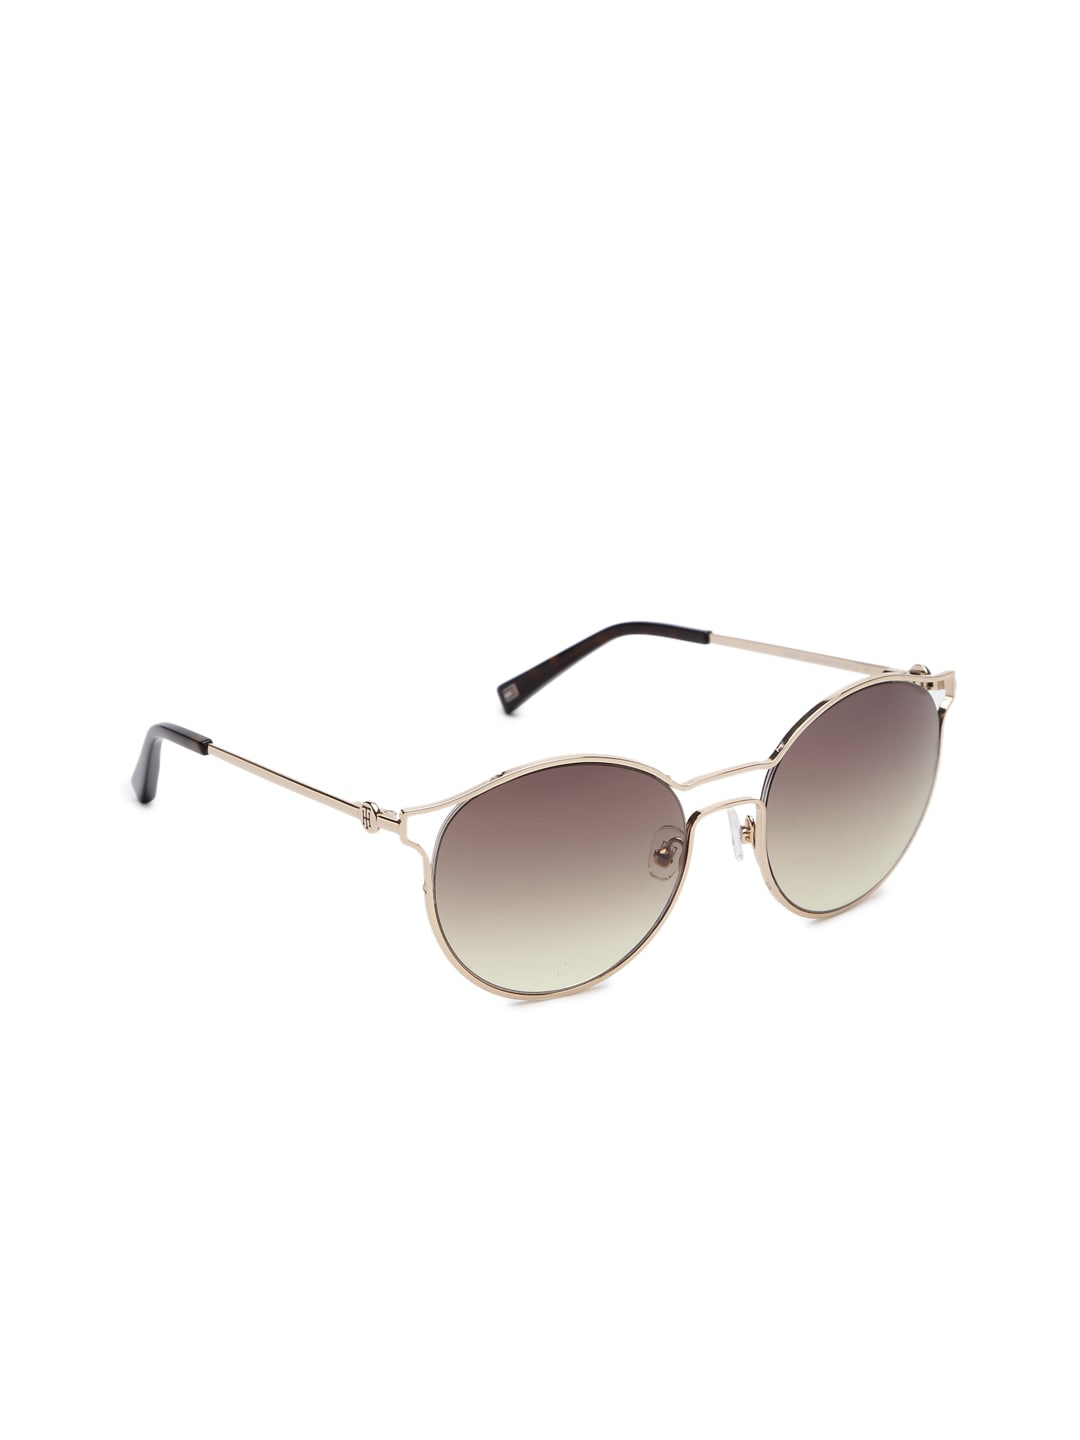 663ac2c38c Sunglasses - Buy Shades for Men and Women Online in India